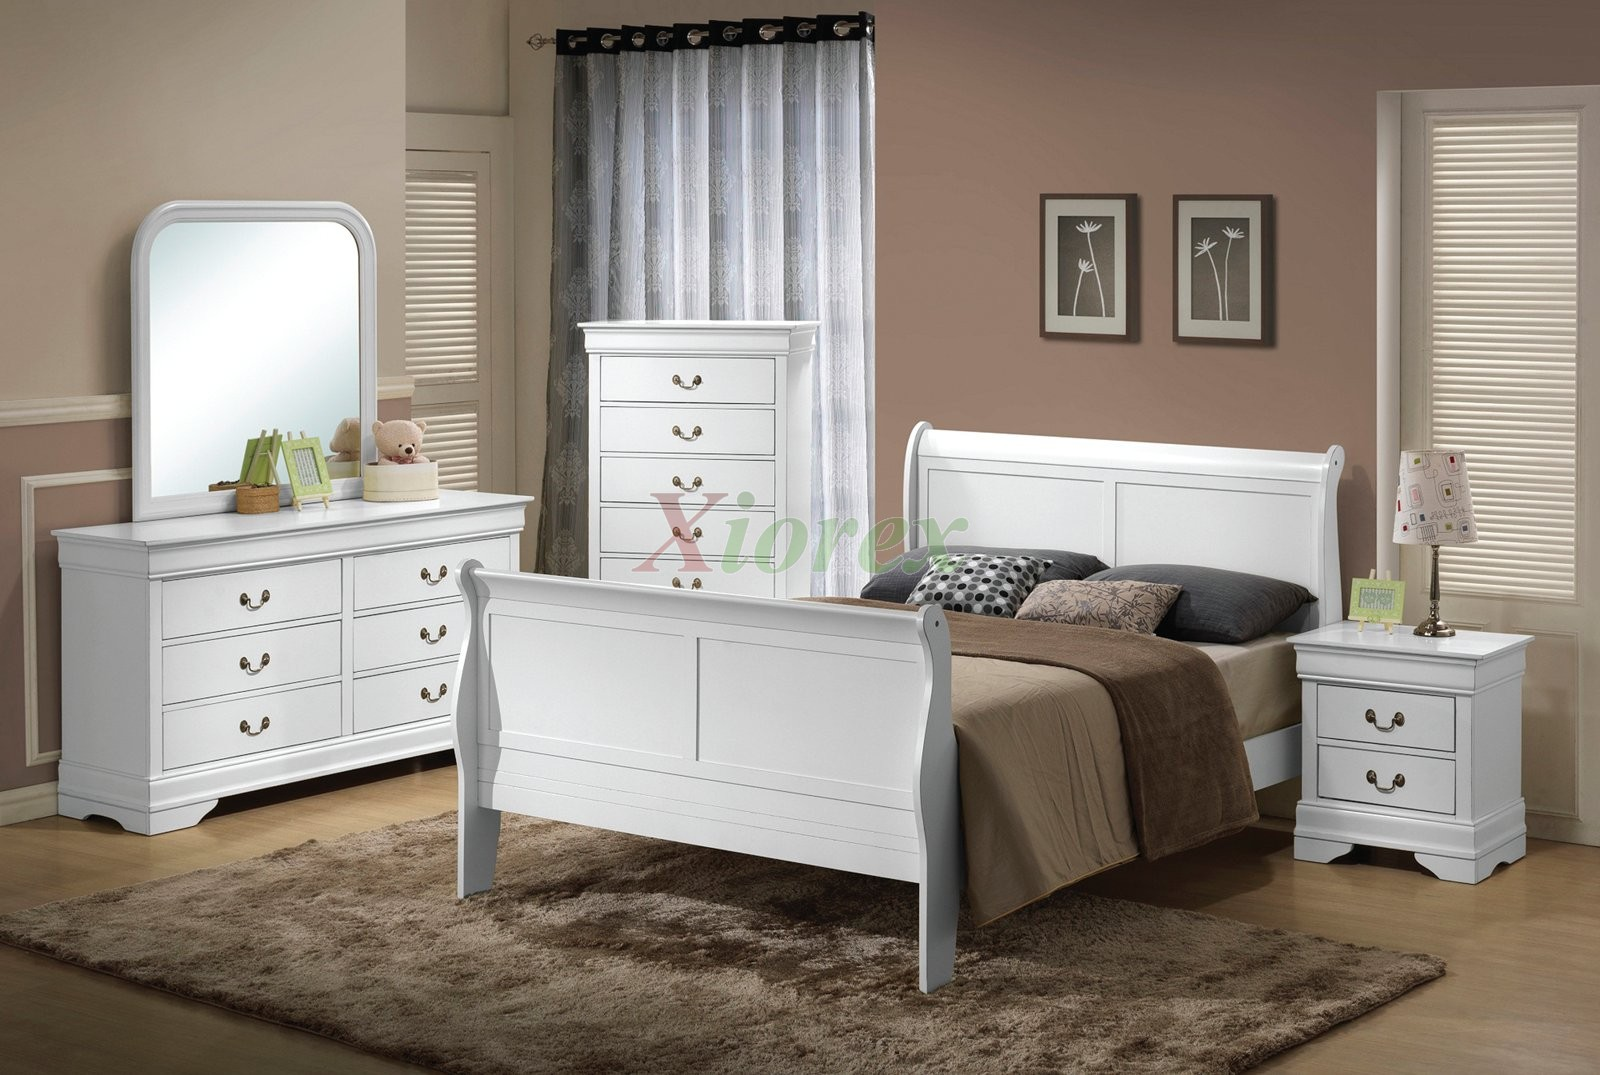 Semi gloss sleigh like bedroom furniture set 170 in cherry black white White wooden bedroom furniture sets